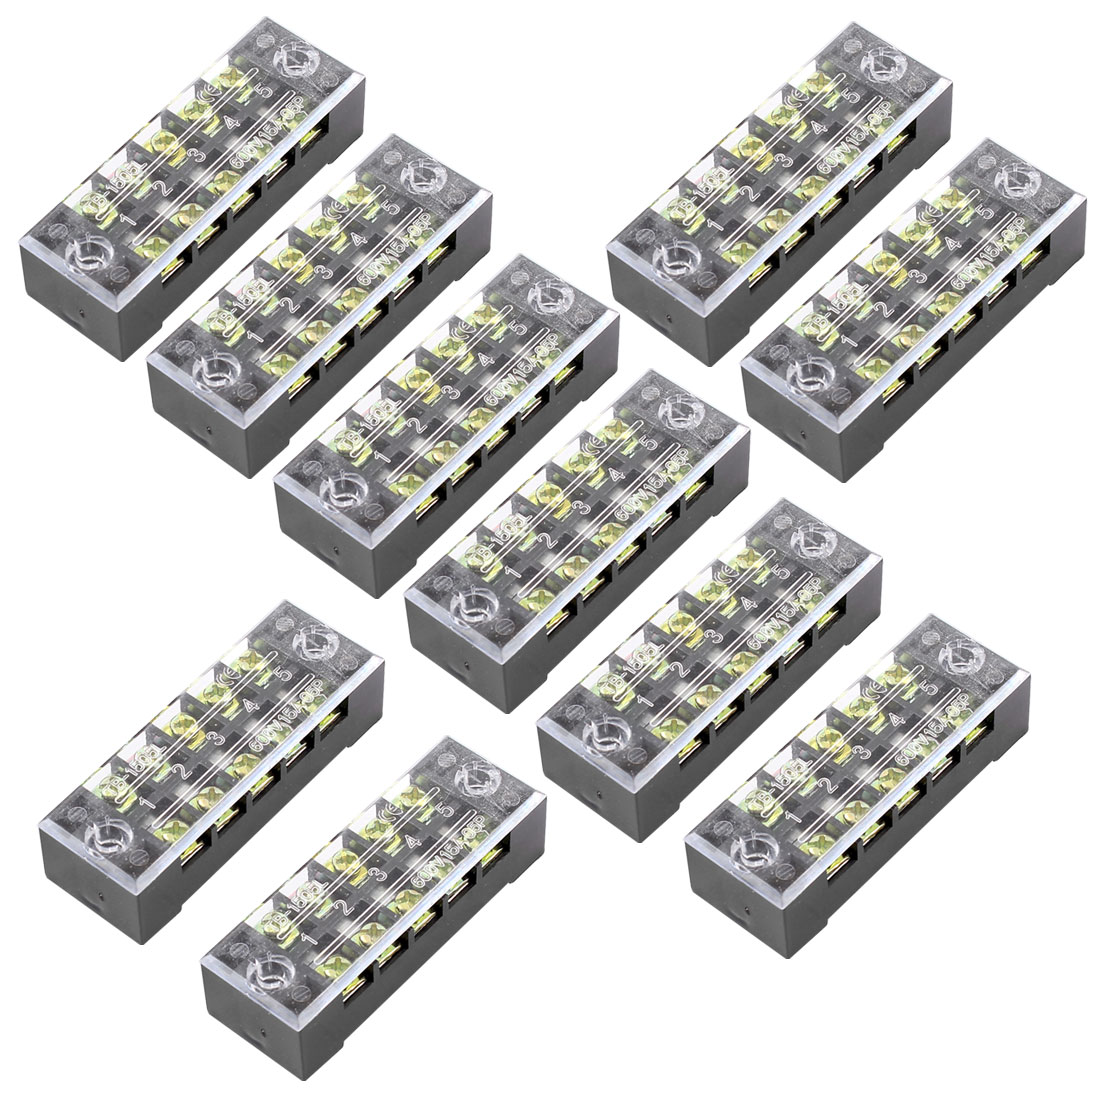 10 Pcs Dual Row 5 Position Screw Terminal Block Strip 600V 15A w Cover